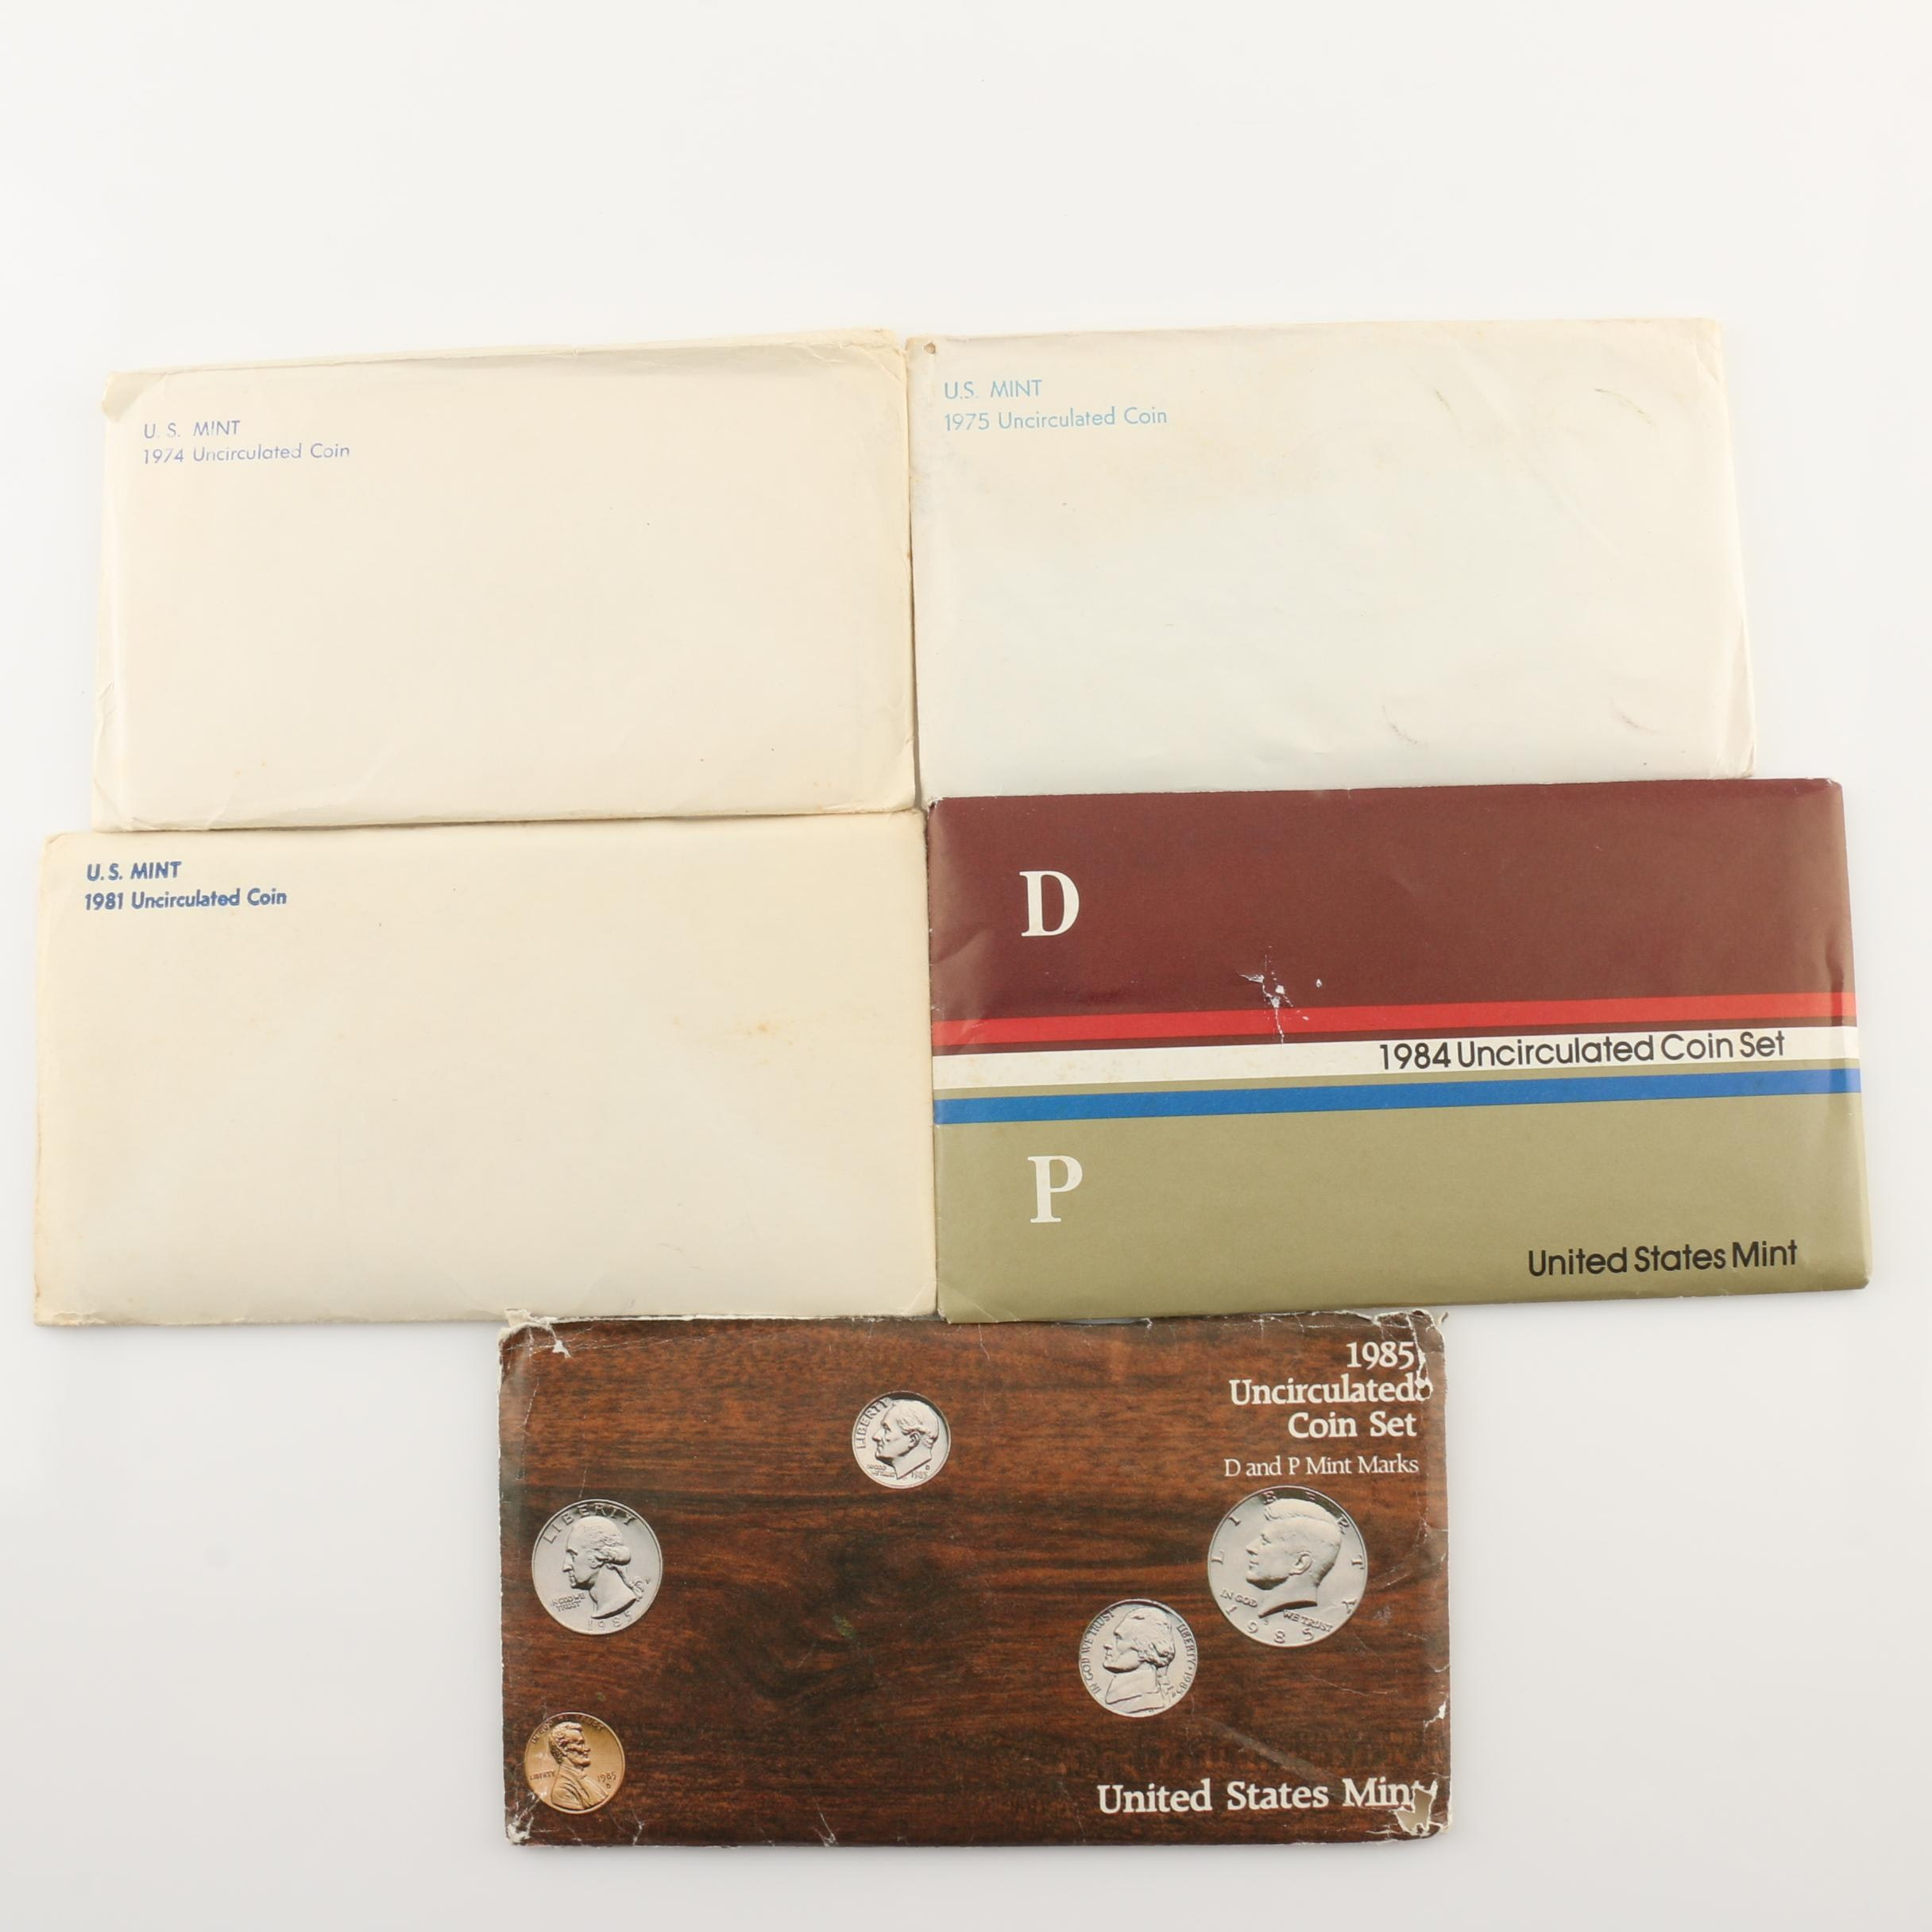 Five U.S. Mint Uncirculated Sets Including 1974, 1975, 1981, 1984, and 1985